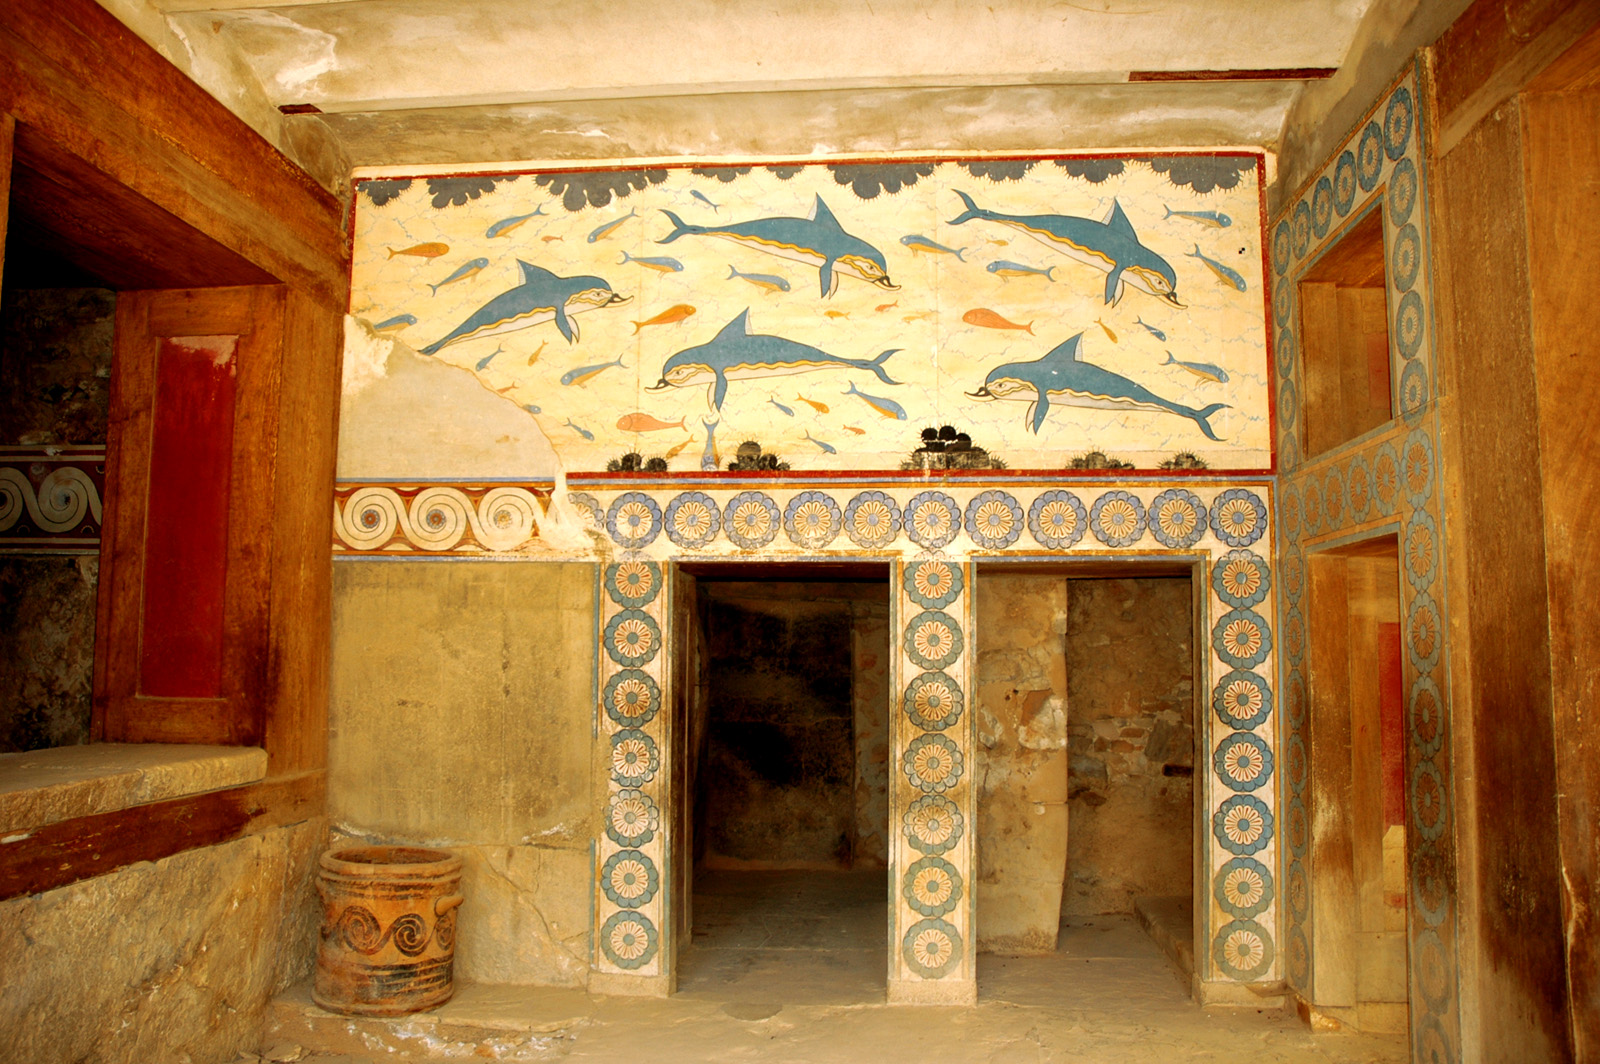 File:Inside the ancient Minoan Palace of Knossos (1700 BC) - Crete, Greece  - panoramio.jpg - Wikimedia Commons